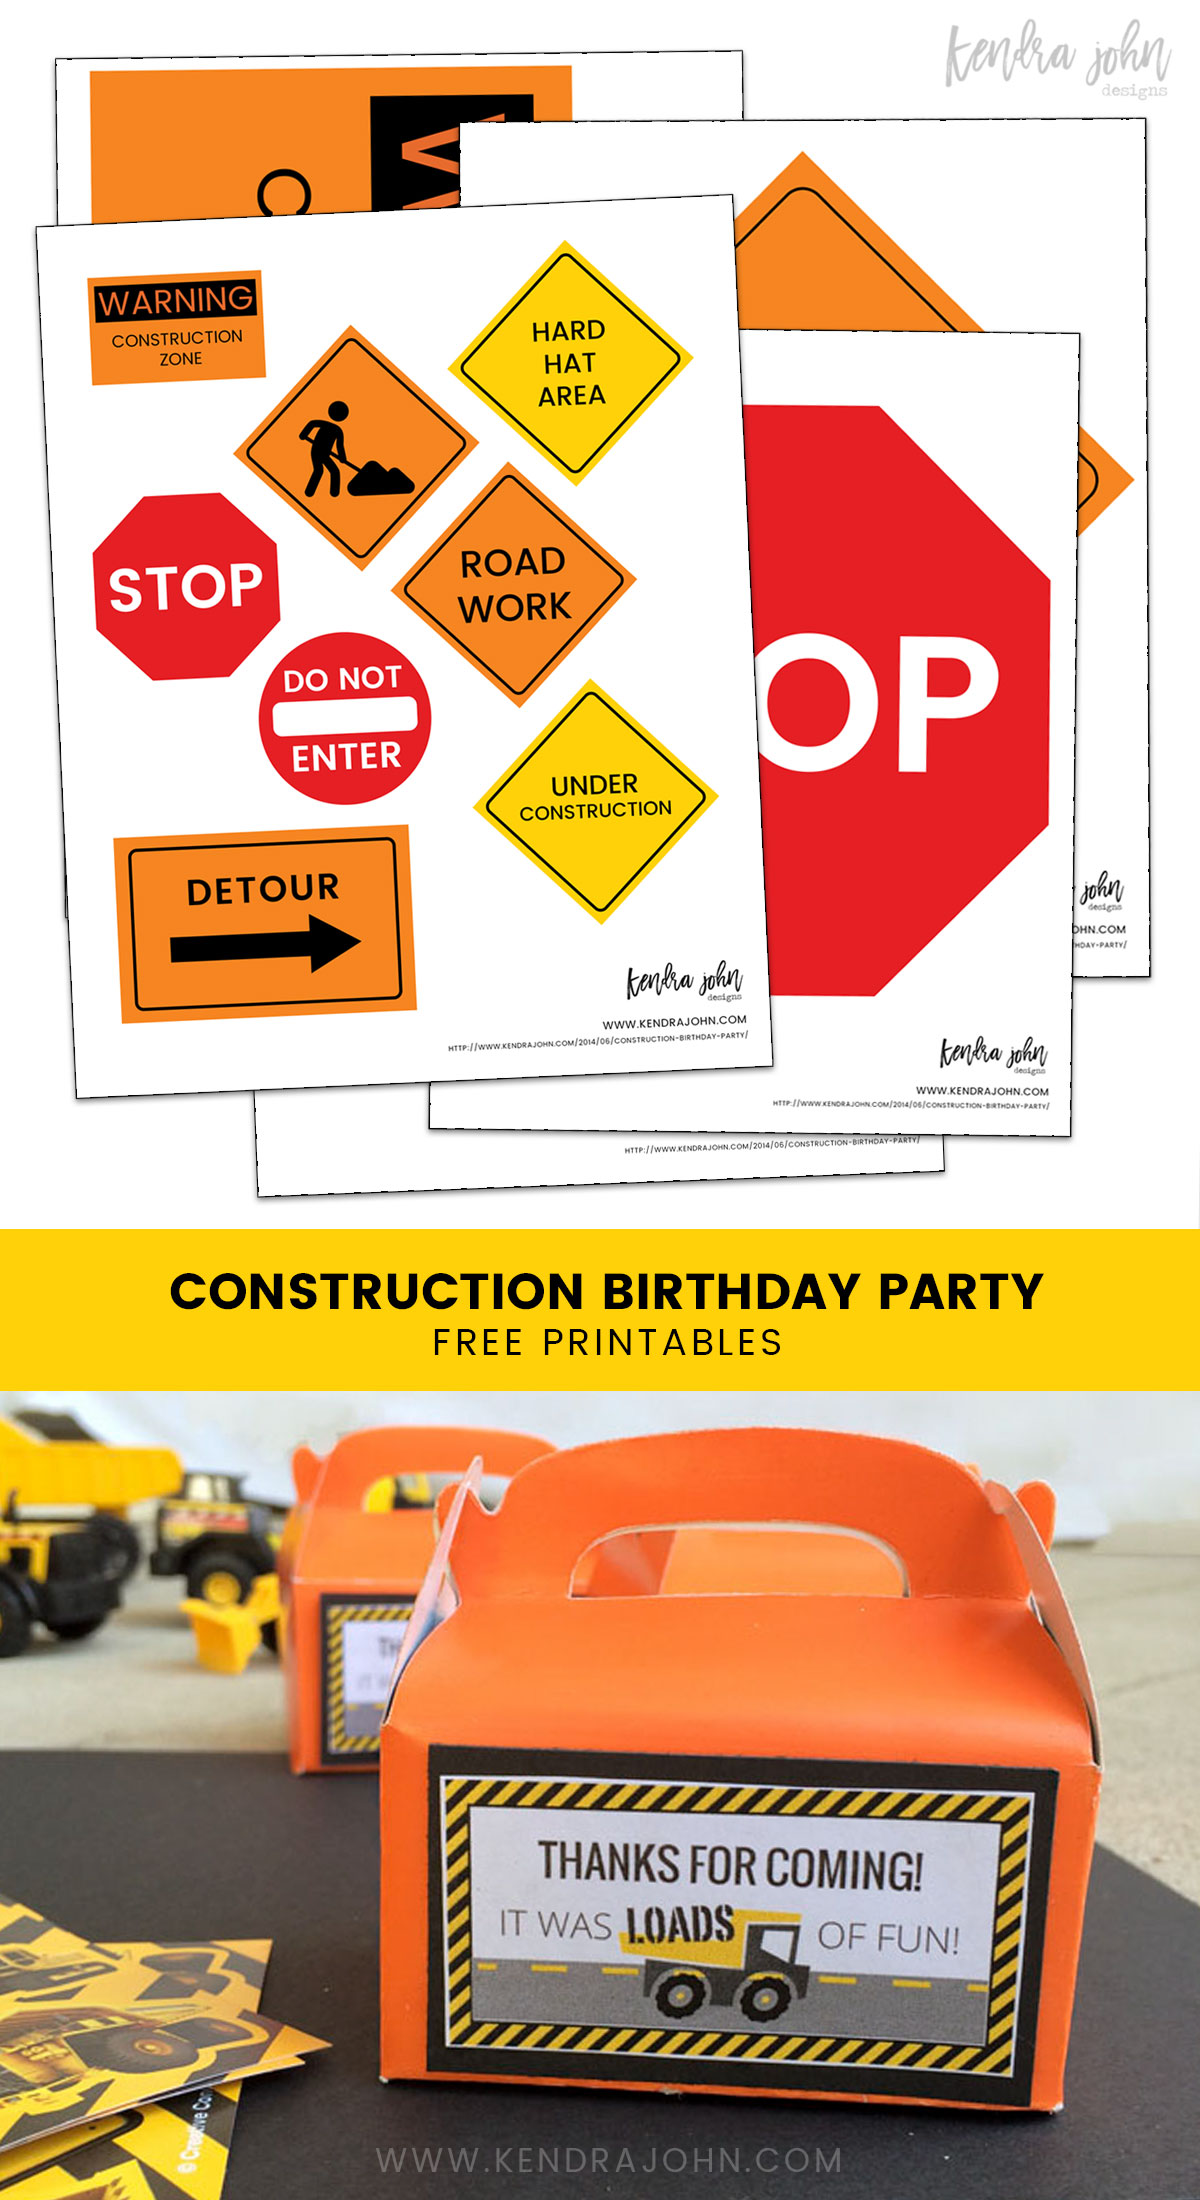 Construction Party Signs Free Printables Unique Birthday Party Ideas And Themes